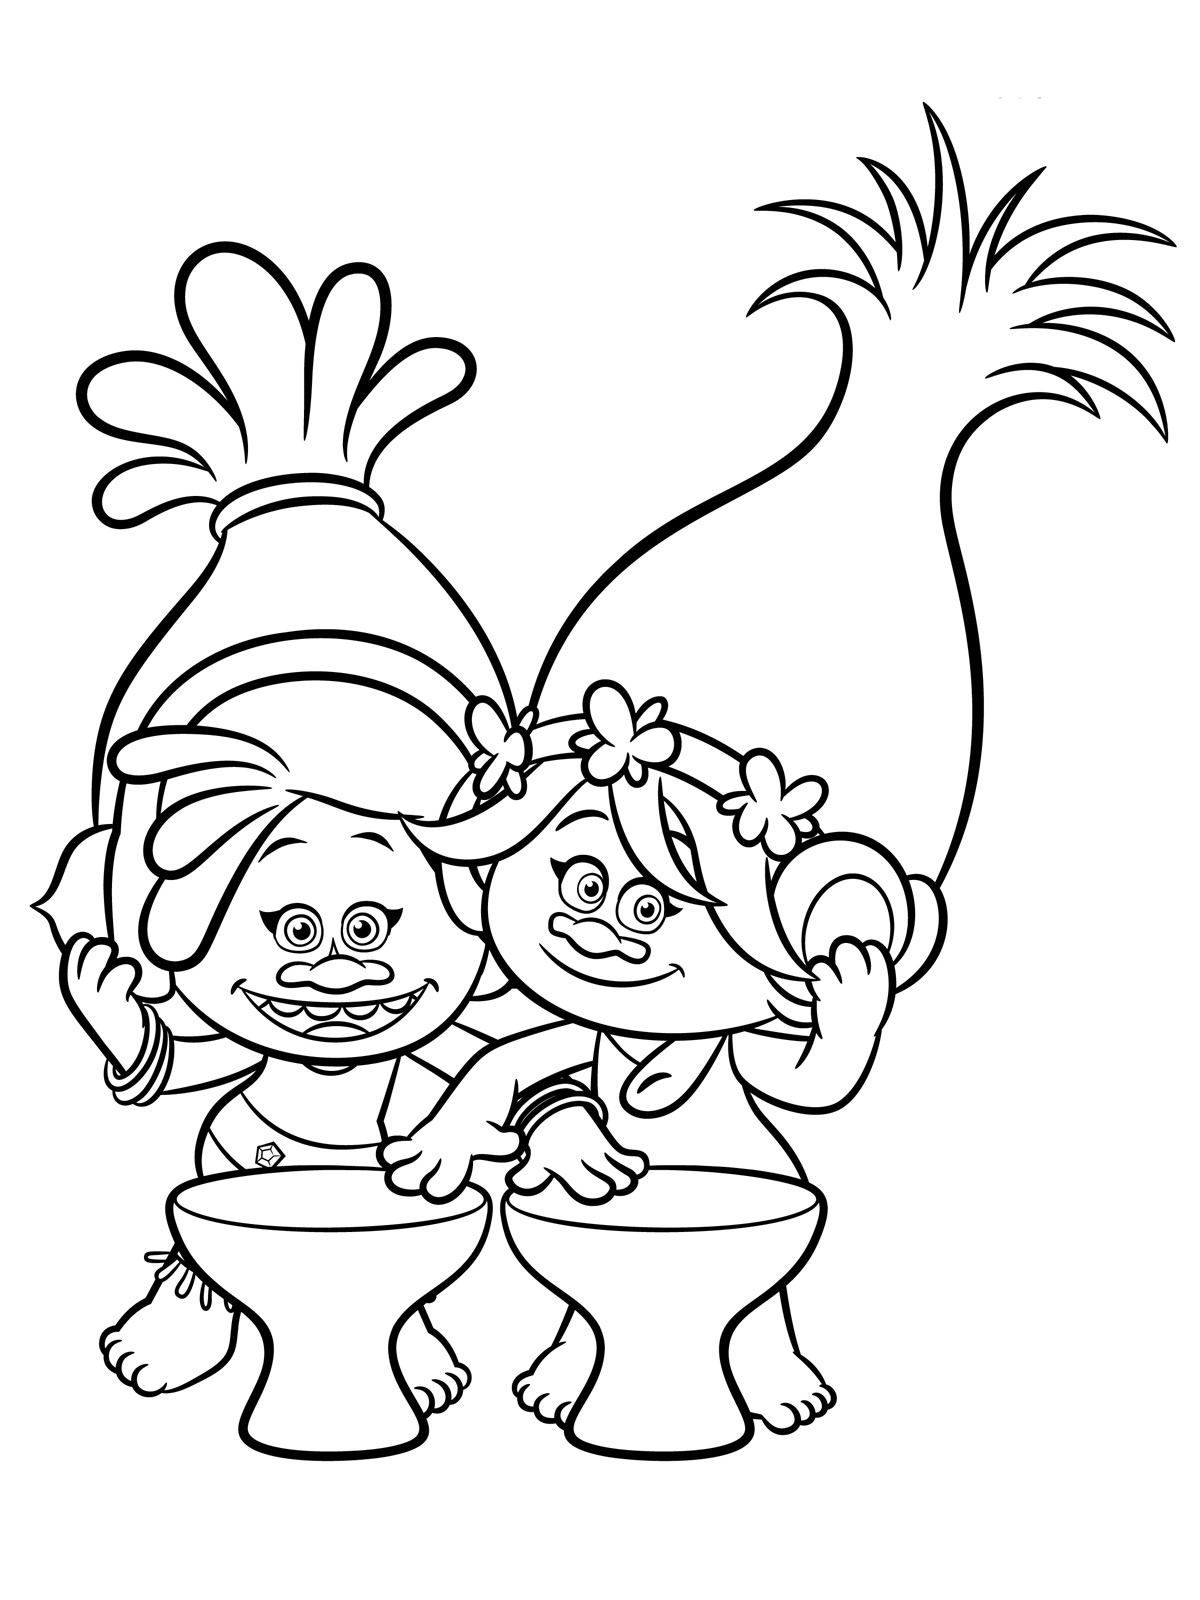 Free Coloring Sheets For Kids Trolls  Trolls Coloring pages to and print for free